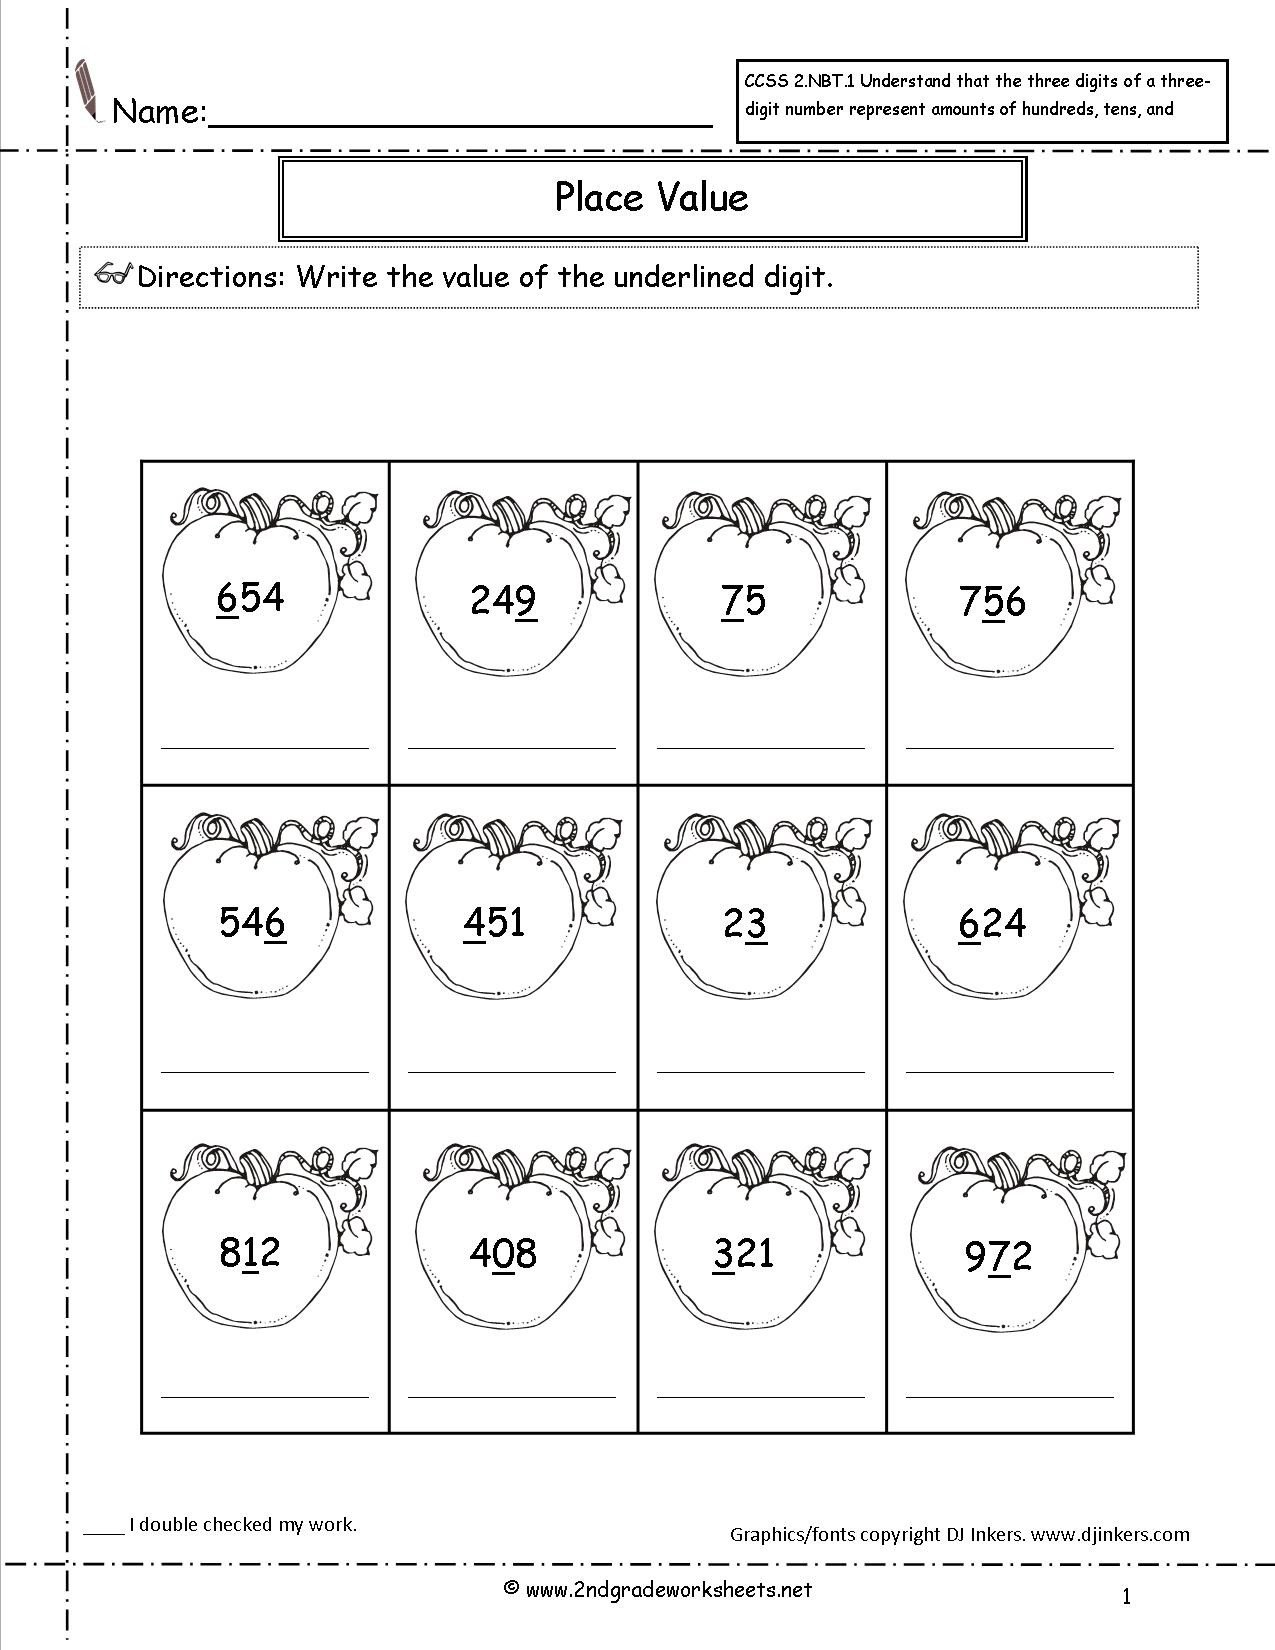 Sequence Worksheets 2nd Grade Sequence events Worksheets Mr